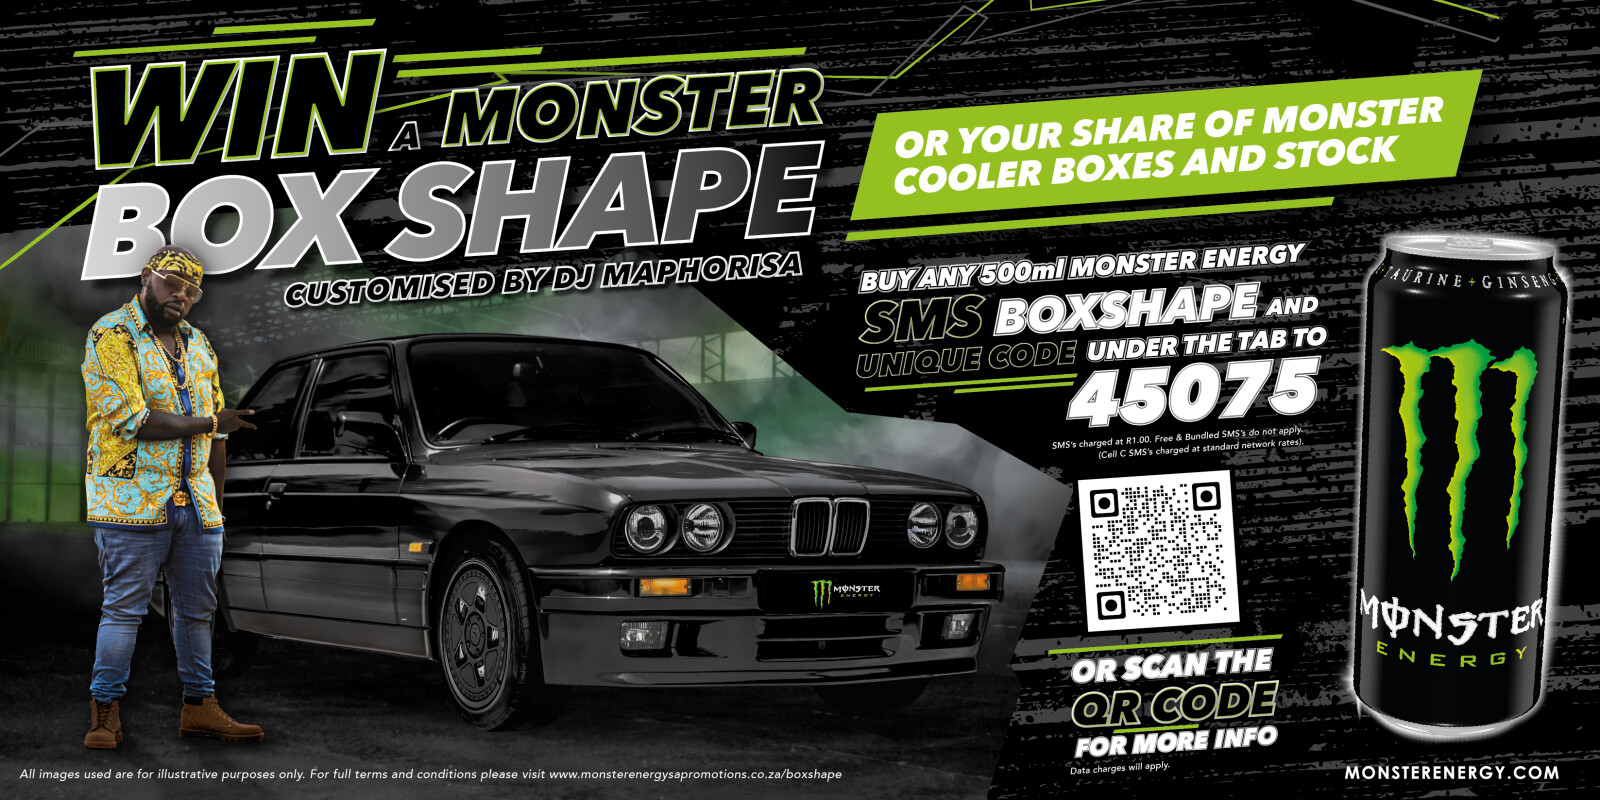 Win a Box Shape BMW customised by DJ Maphorisa with Monster Energy